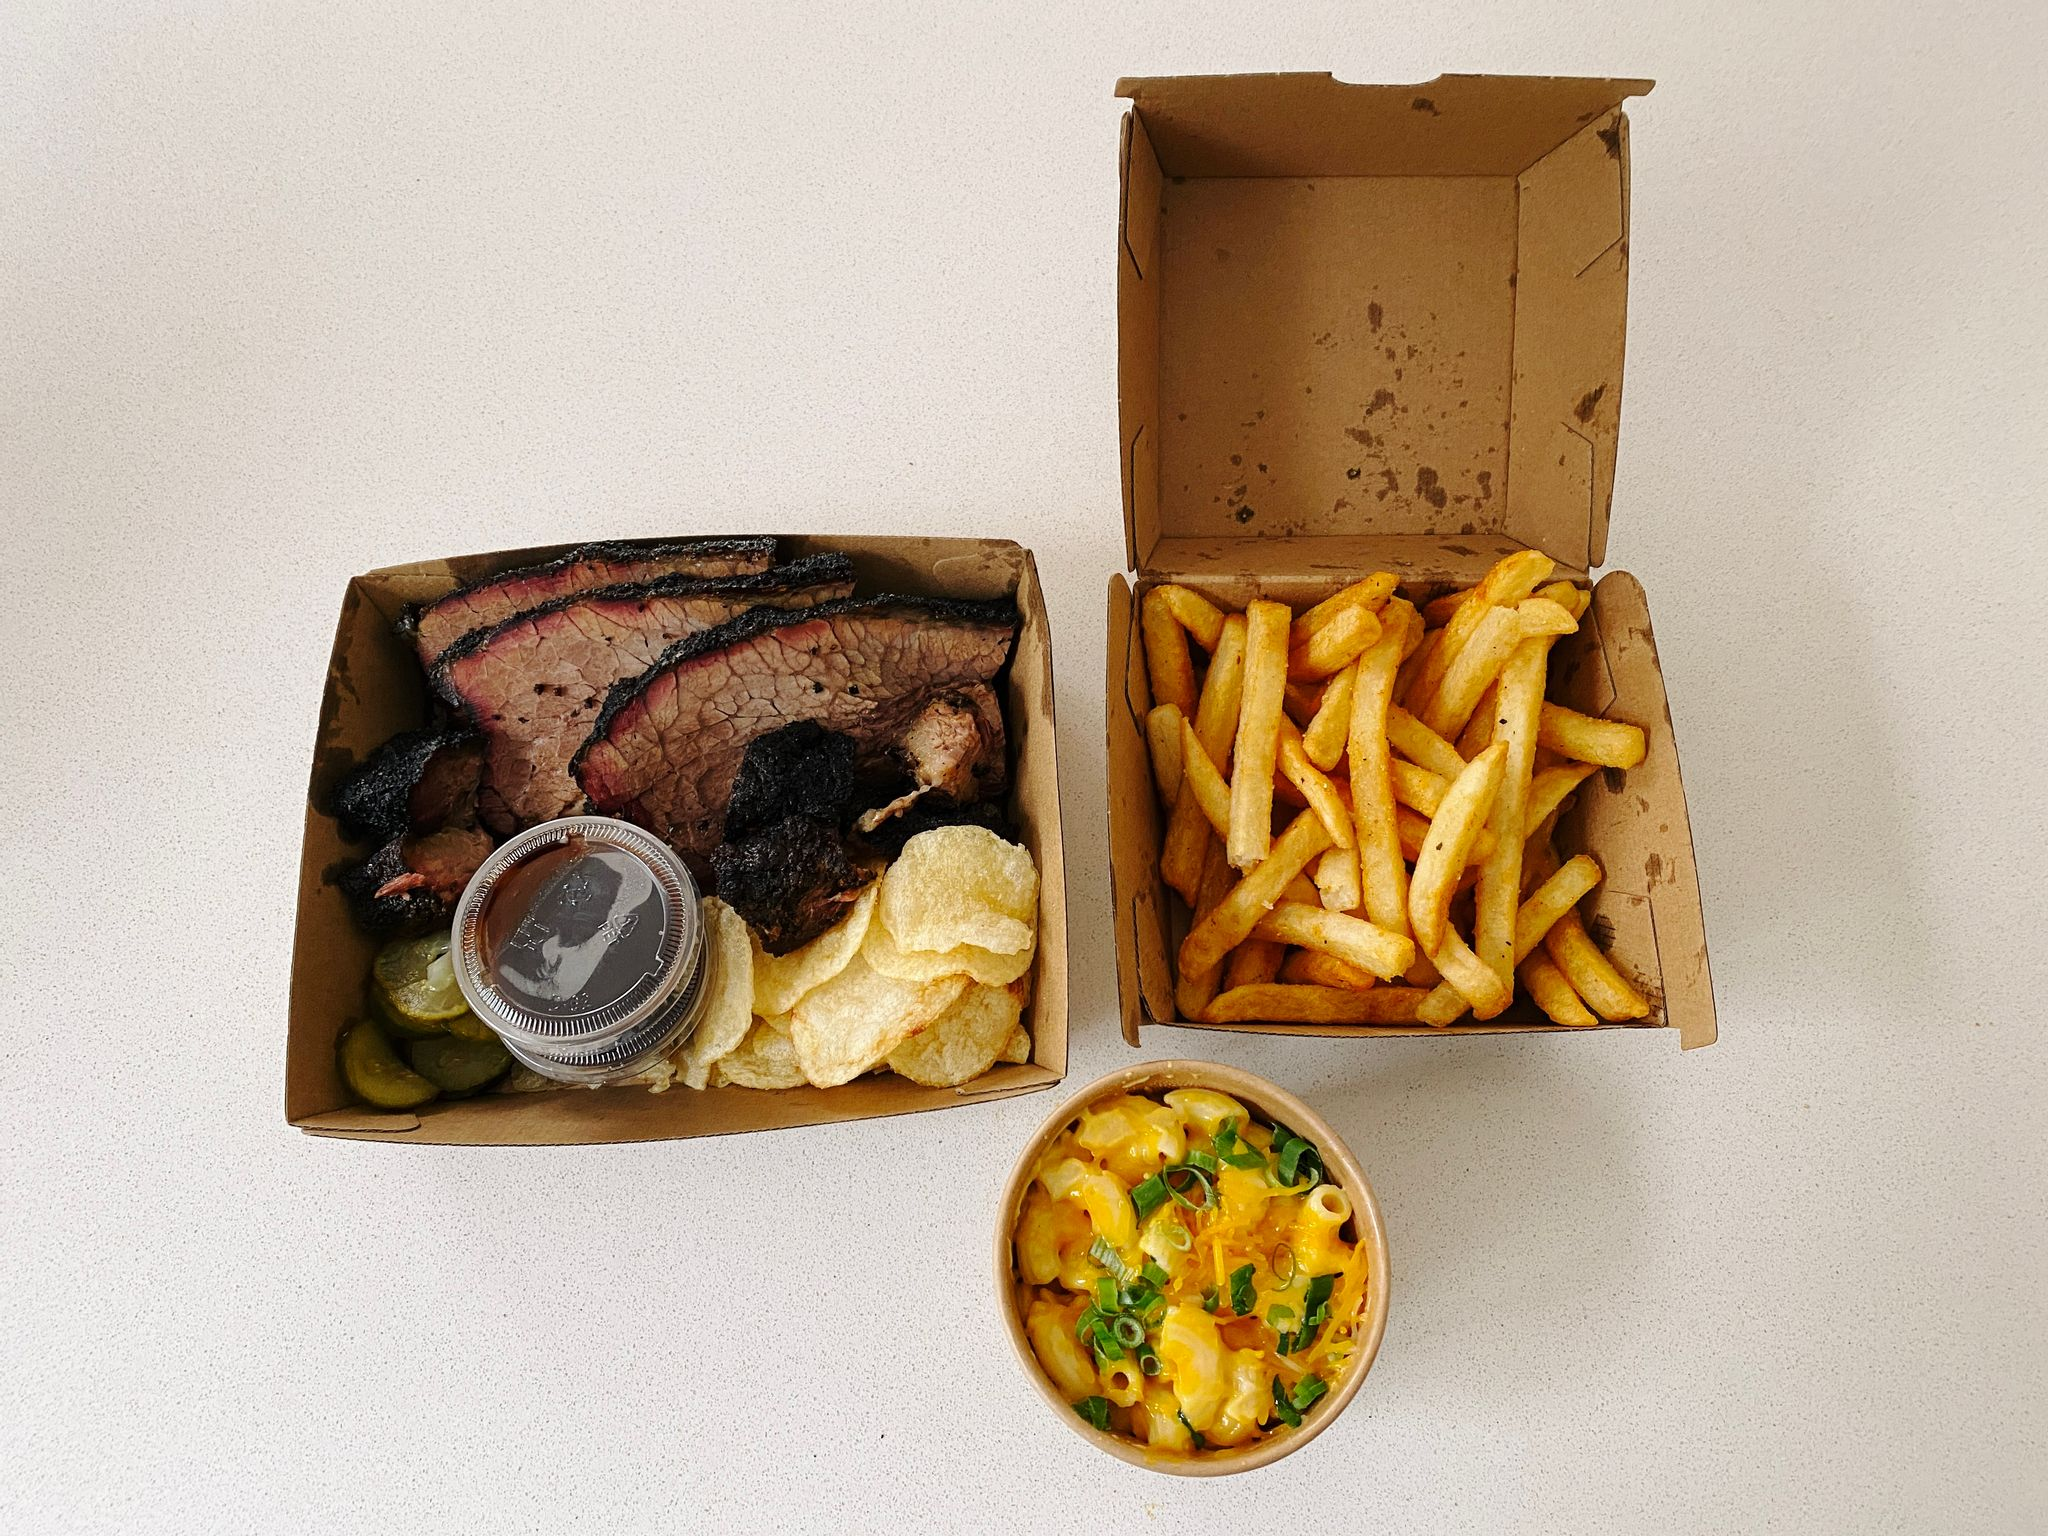 A photo of a box of hot chips, a container of mac and cheese, and beef brisket with chips and pickles.